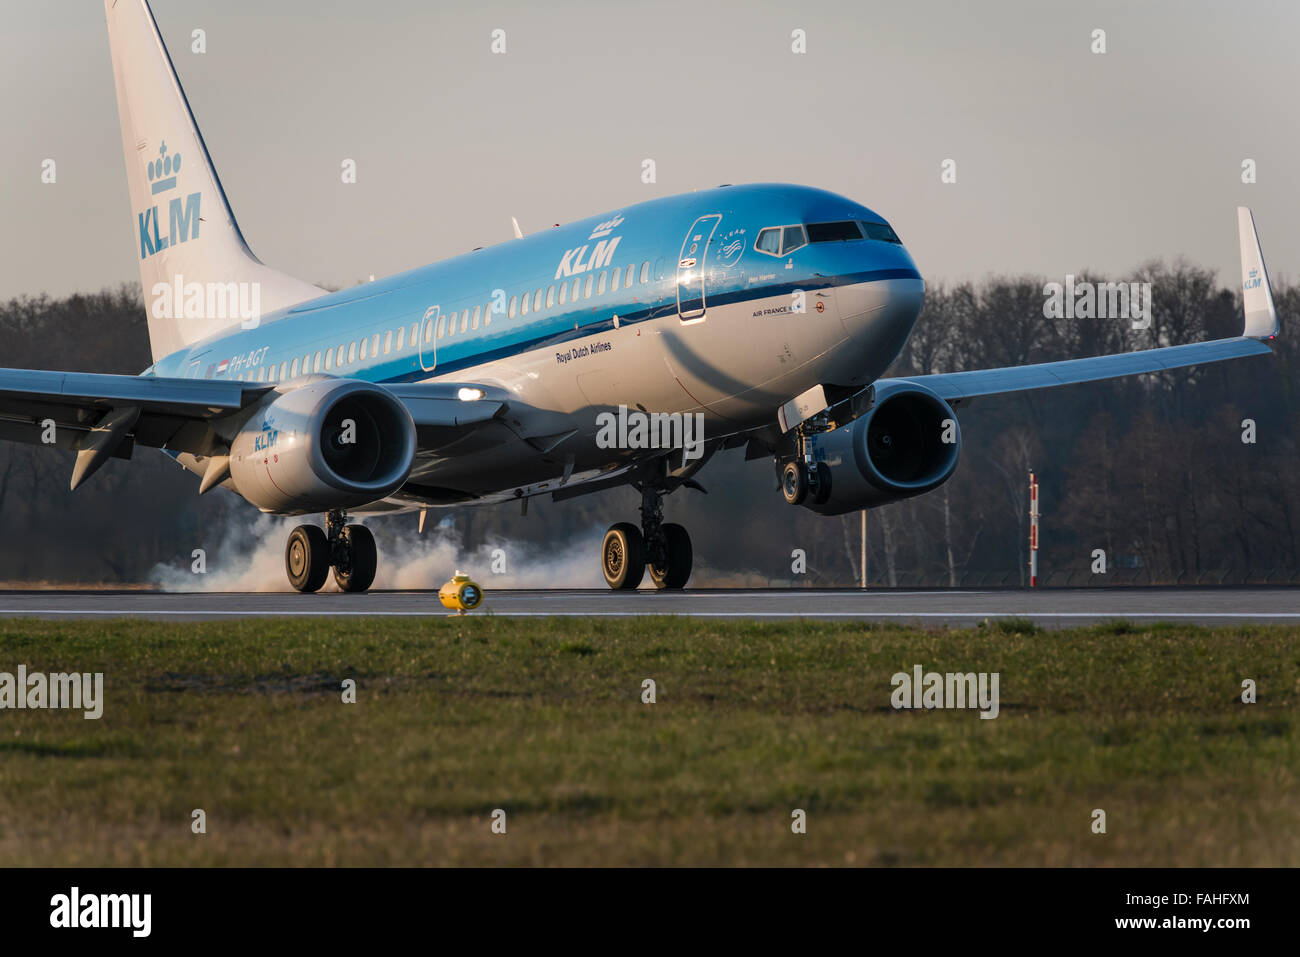 Landing Boeing 737 passenger aircraft of KLM with smoking tires at Zurich Kloten airport. - Stock Image